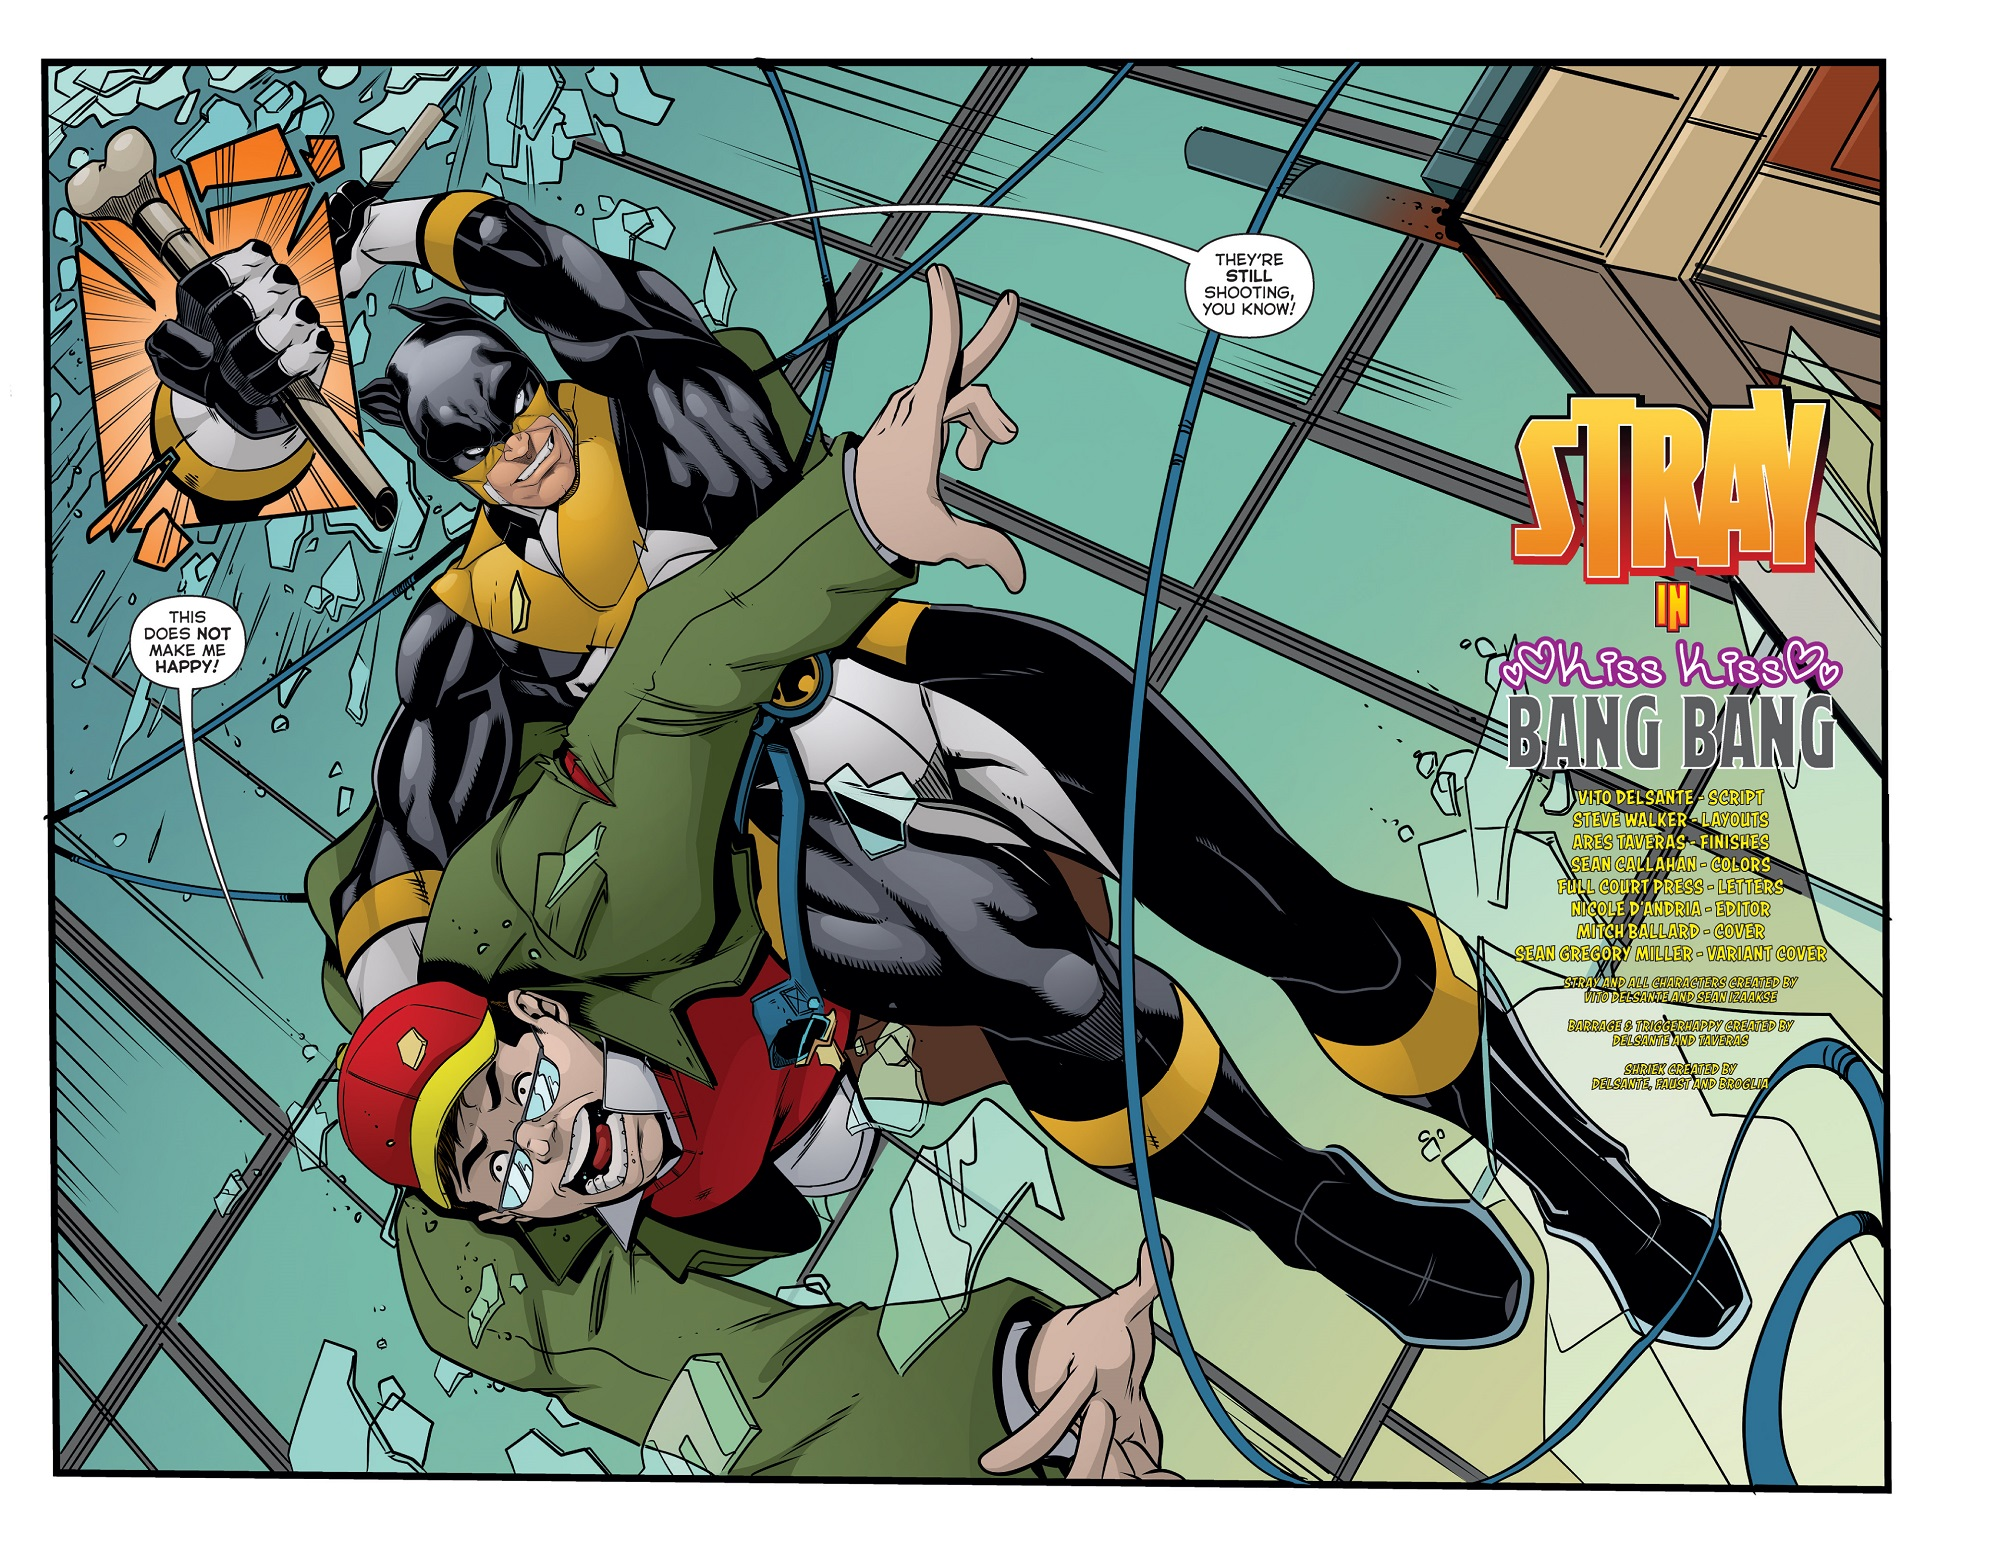 Actionverse #6 featuring Stray Page 2-3